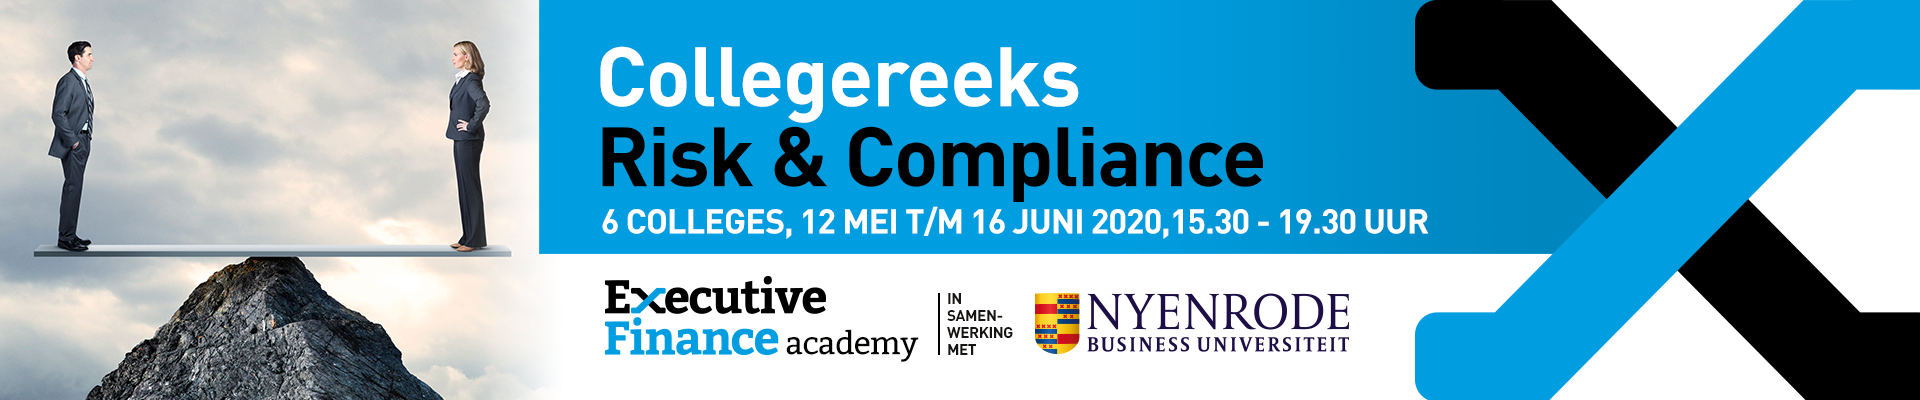 Collegereeks Risk & Compliance voorjaar 2020